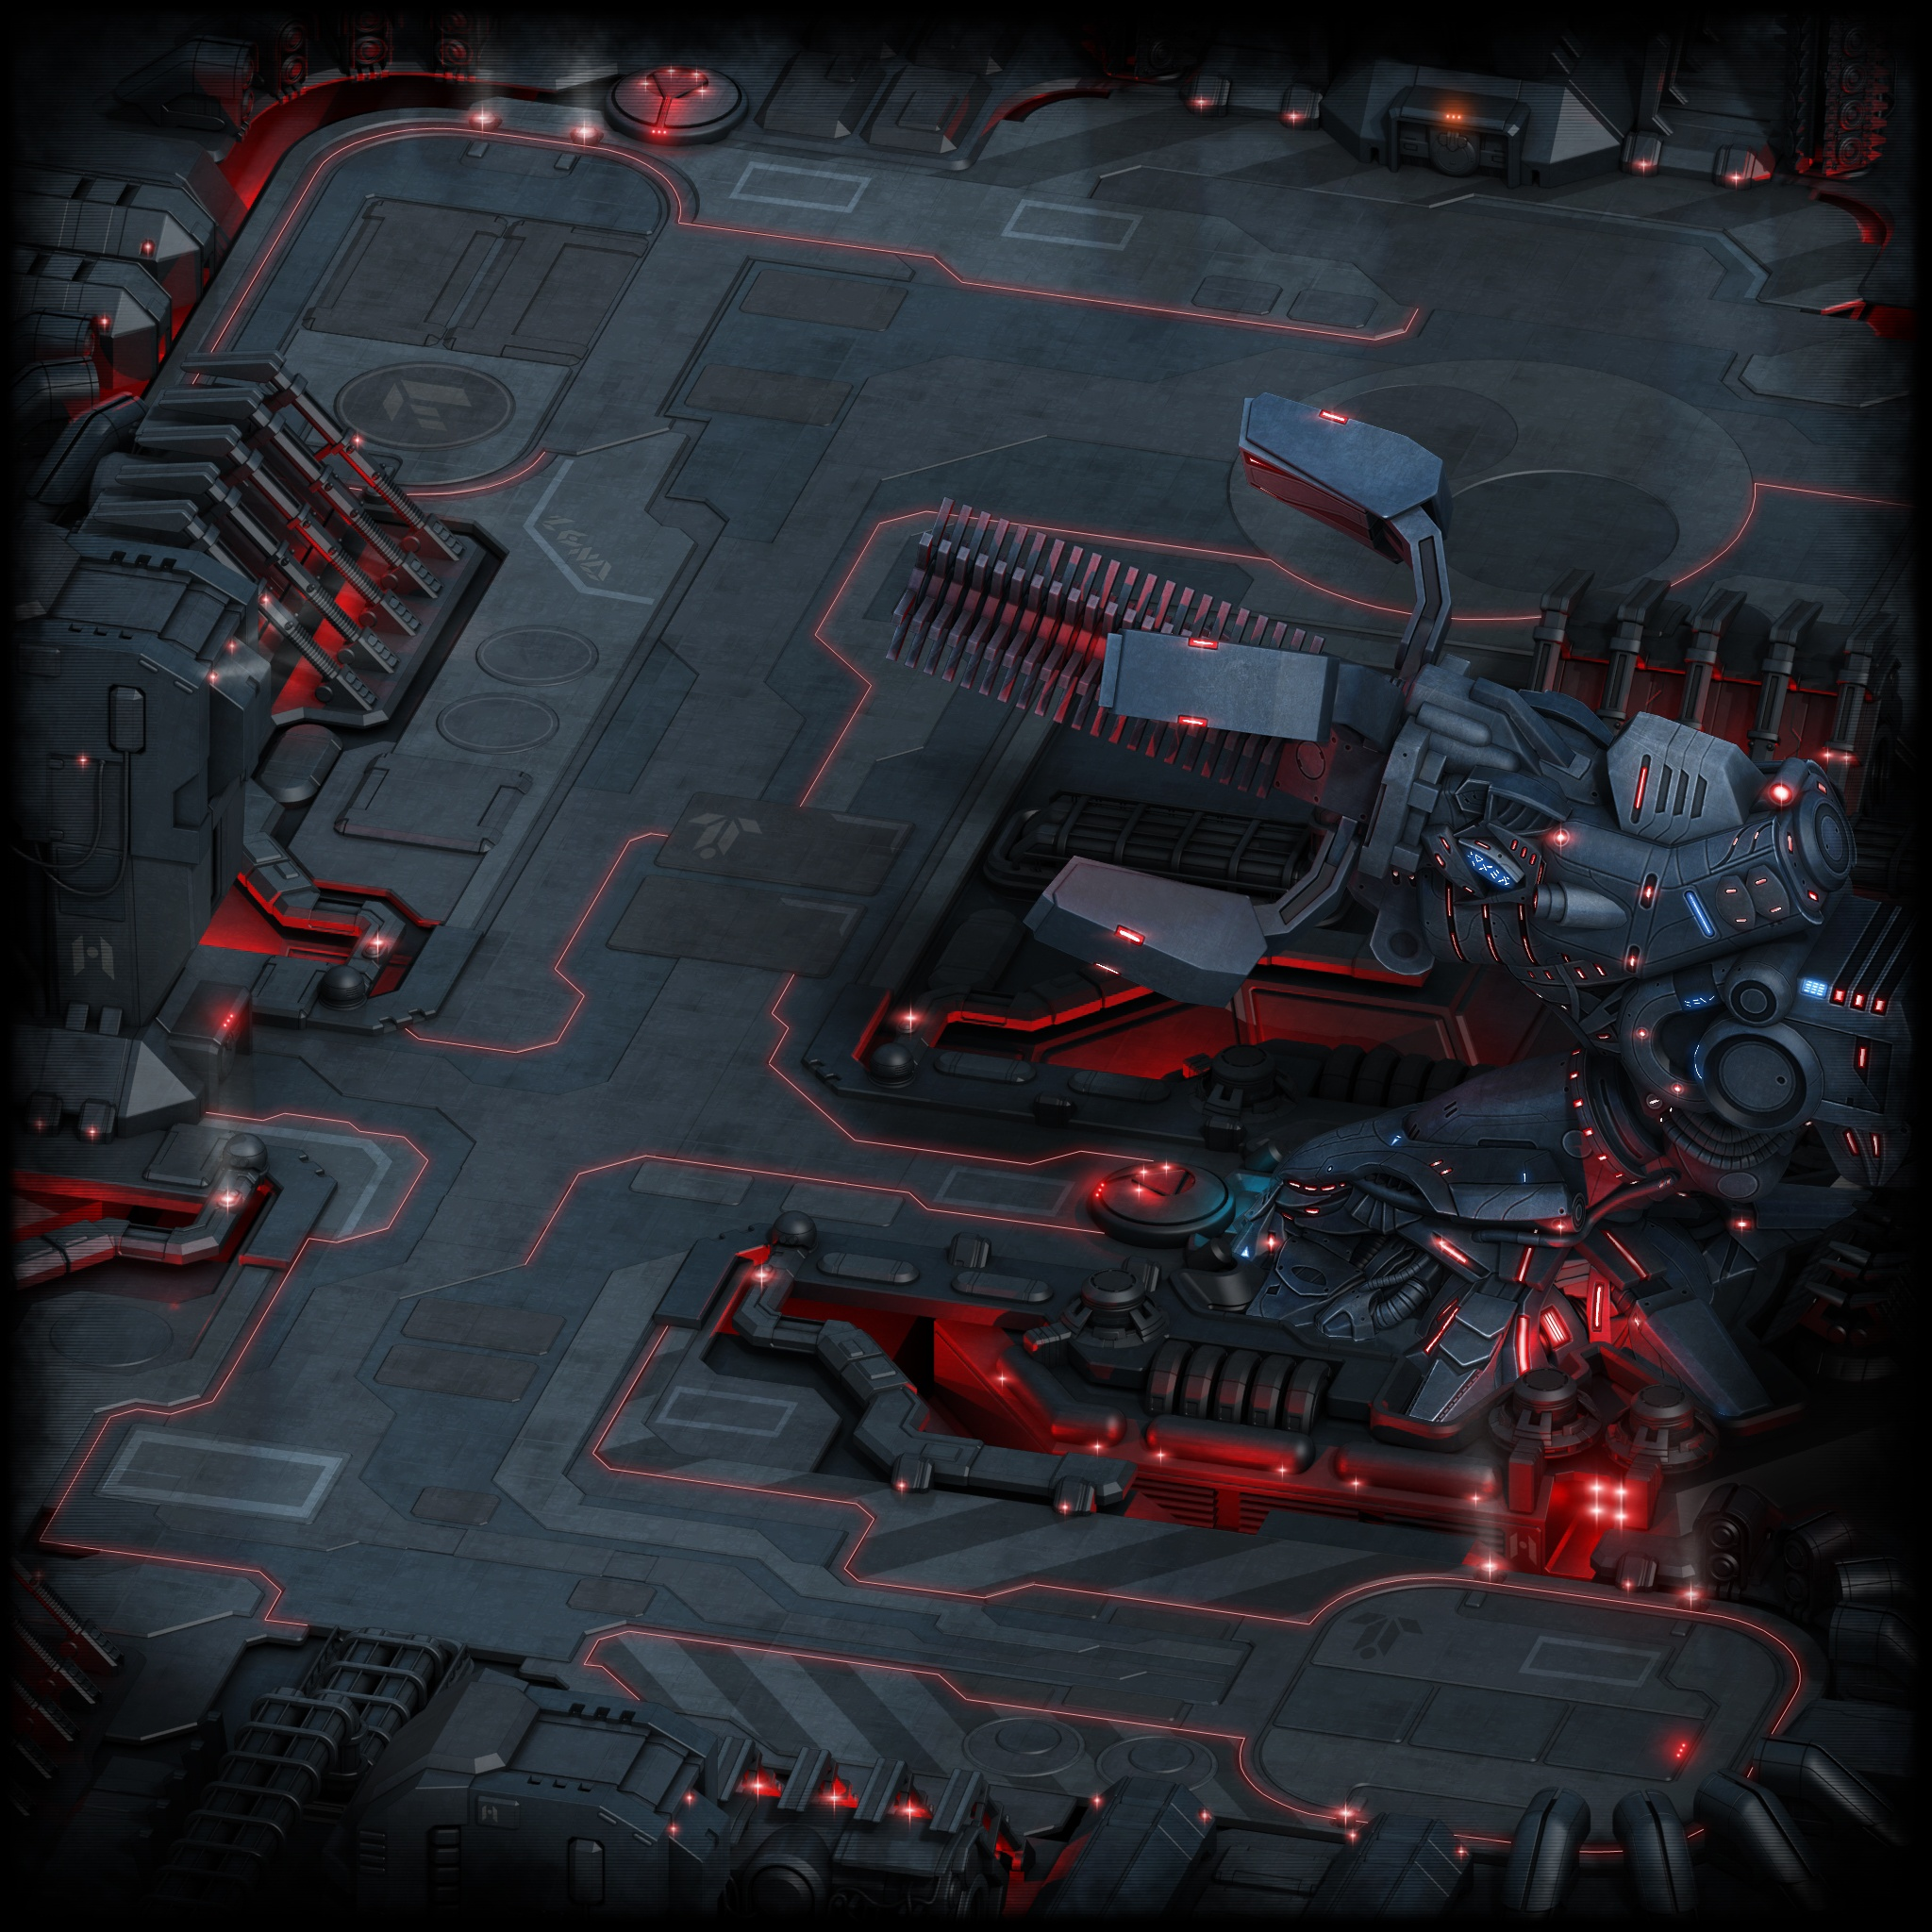 Initial View of Annihilator Location